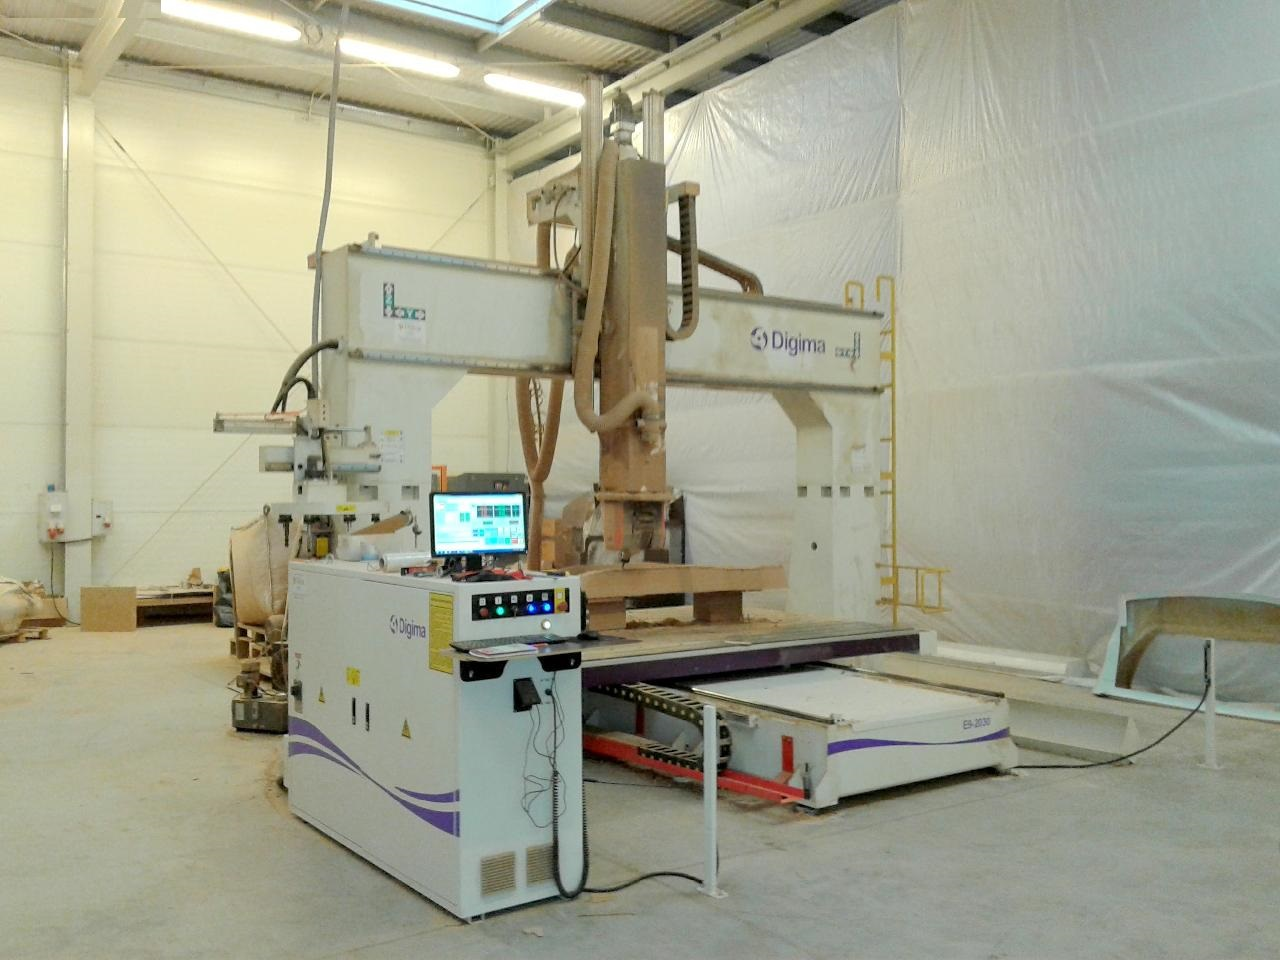 digima e9 2030 d wood cnc machining centre - 5 axis - exapro